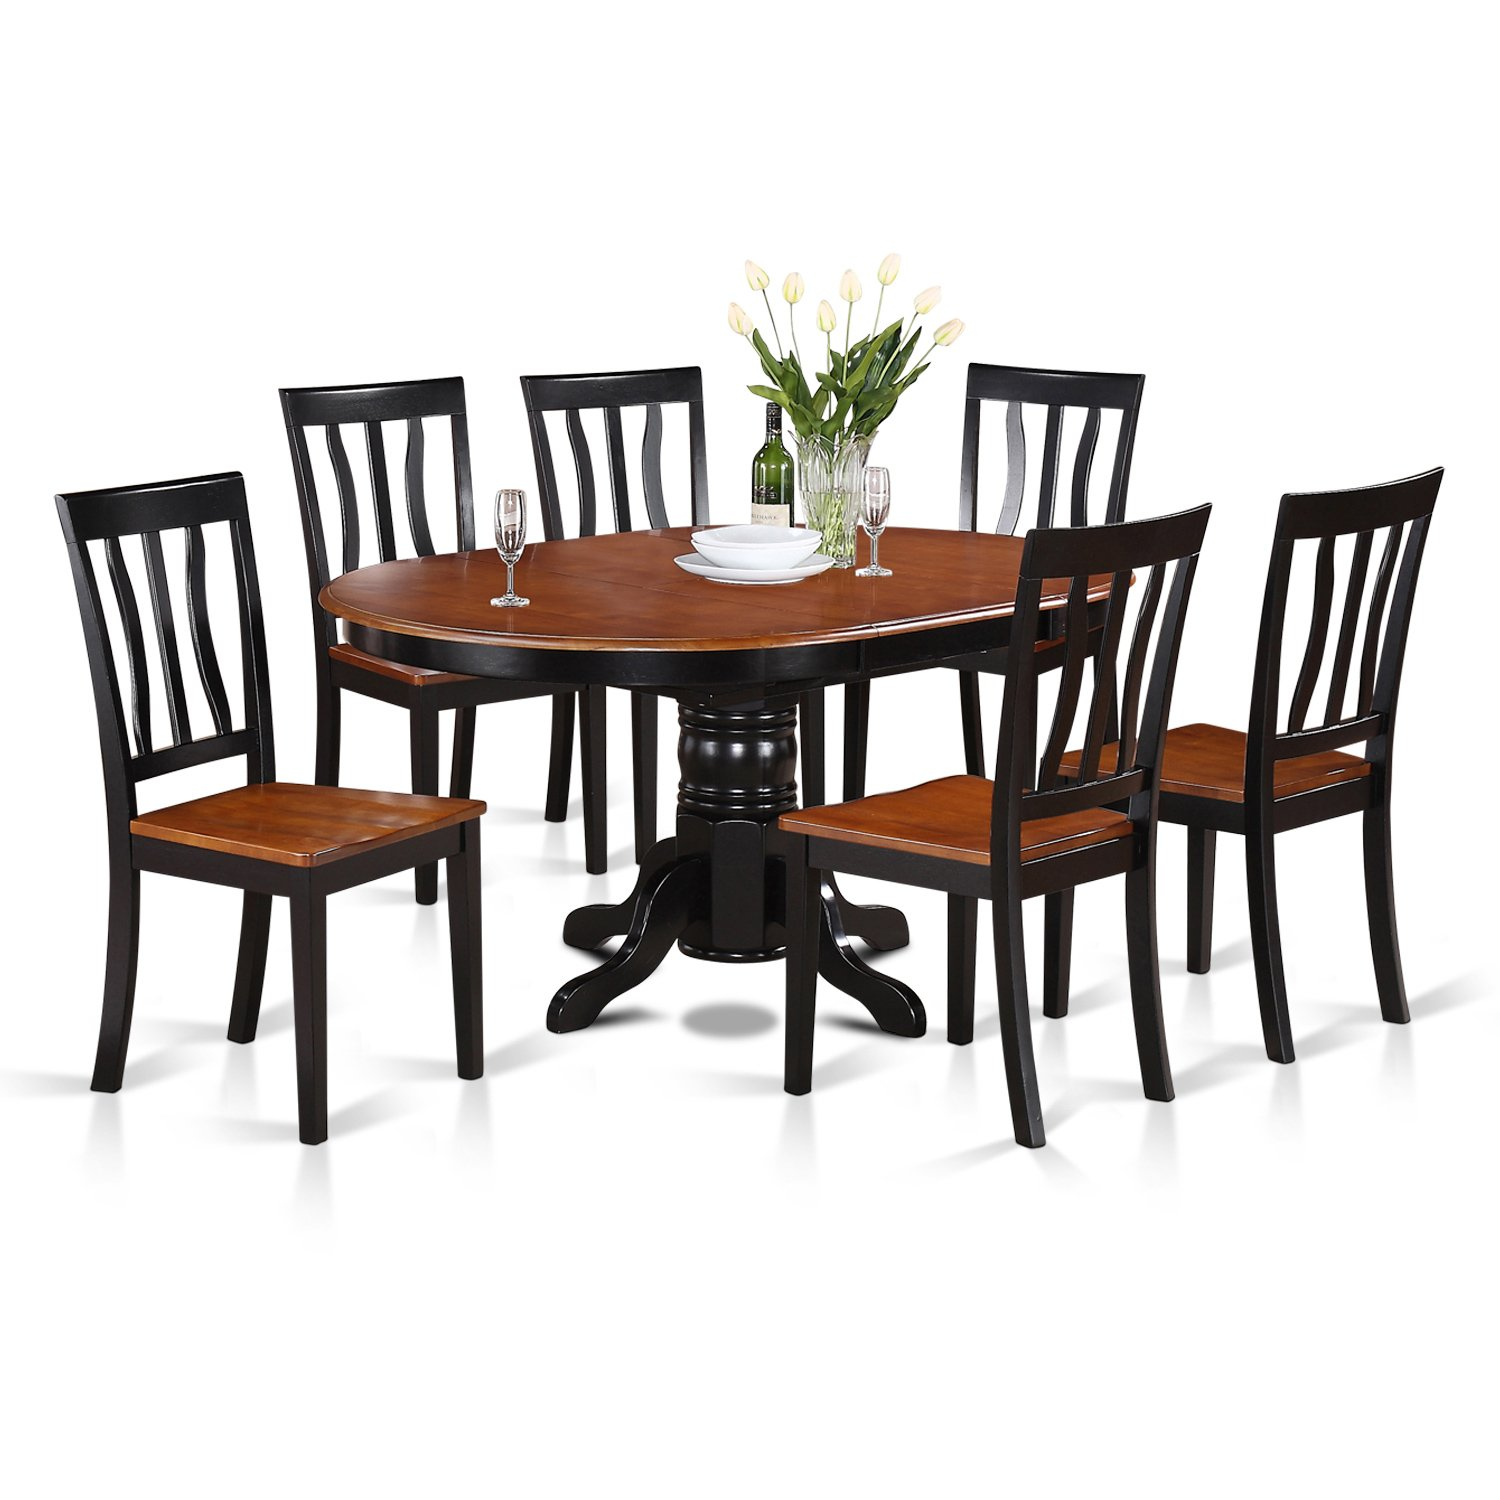 Bon Amazon.com: East West Furniture AVAT7 BLK W 7 Piece Dining Table Set:  Kitchen U0026 Dining